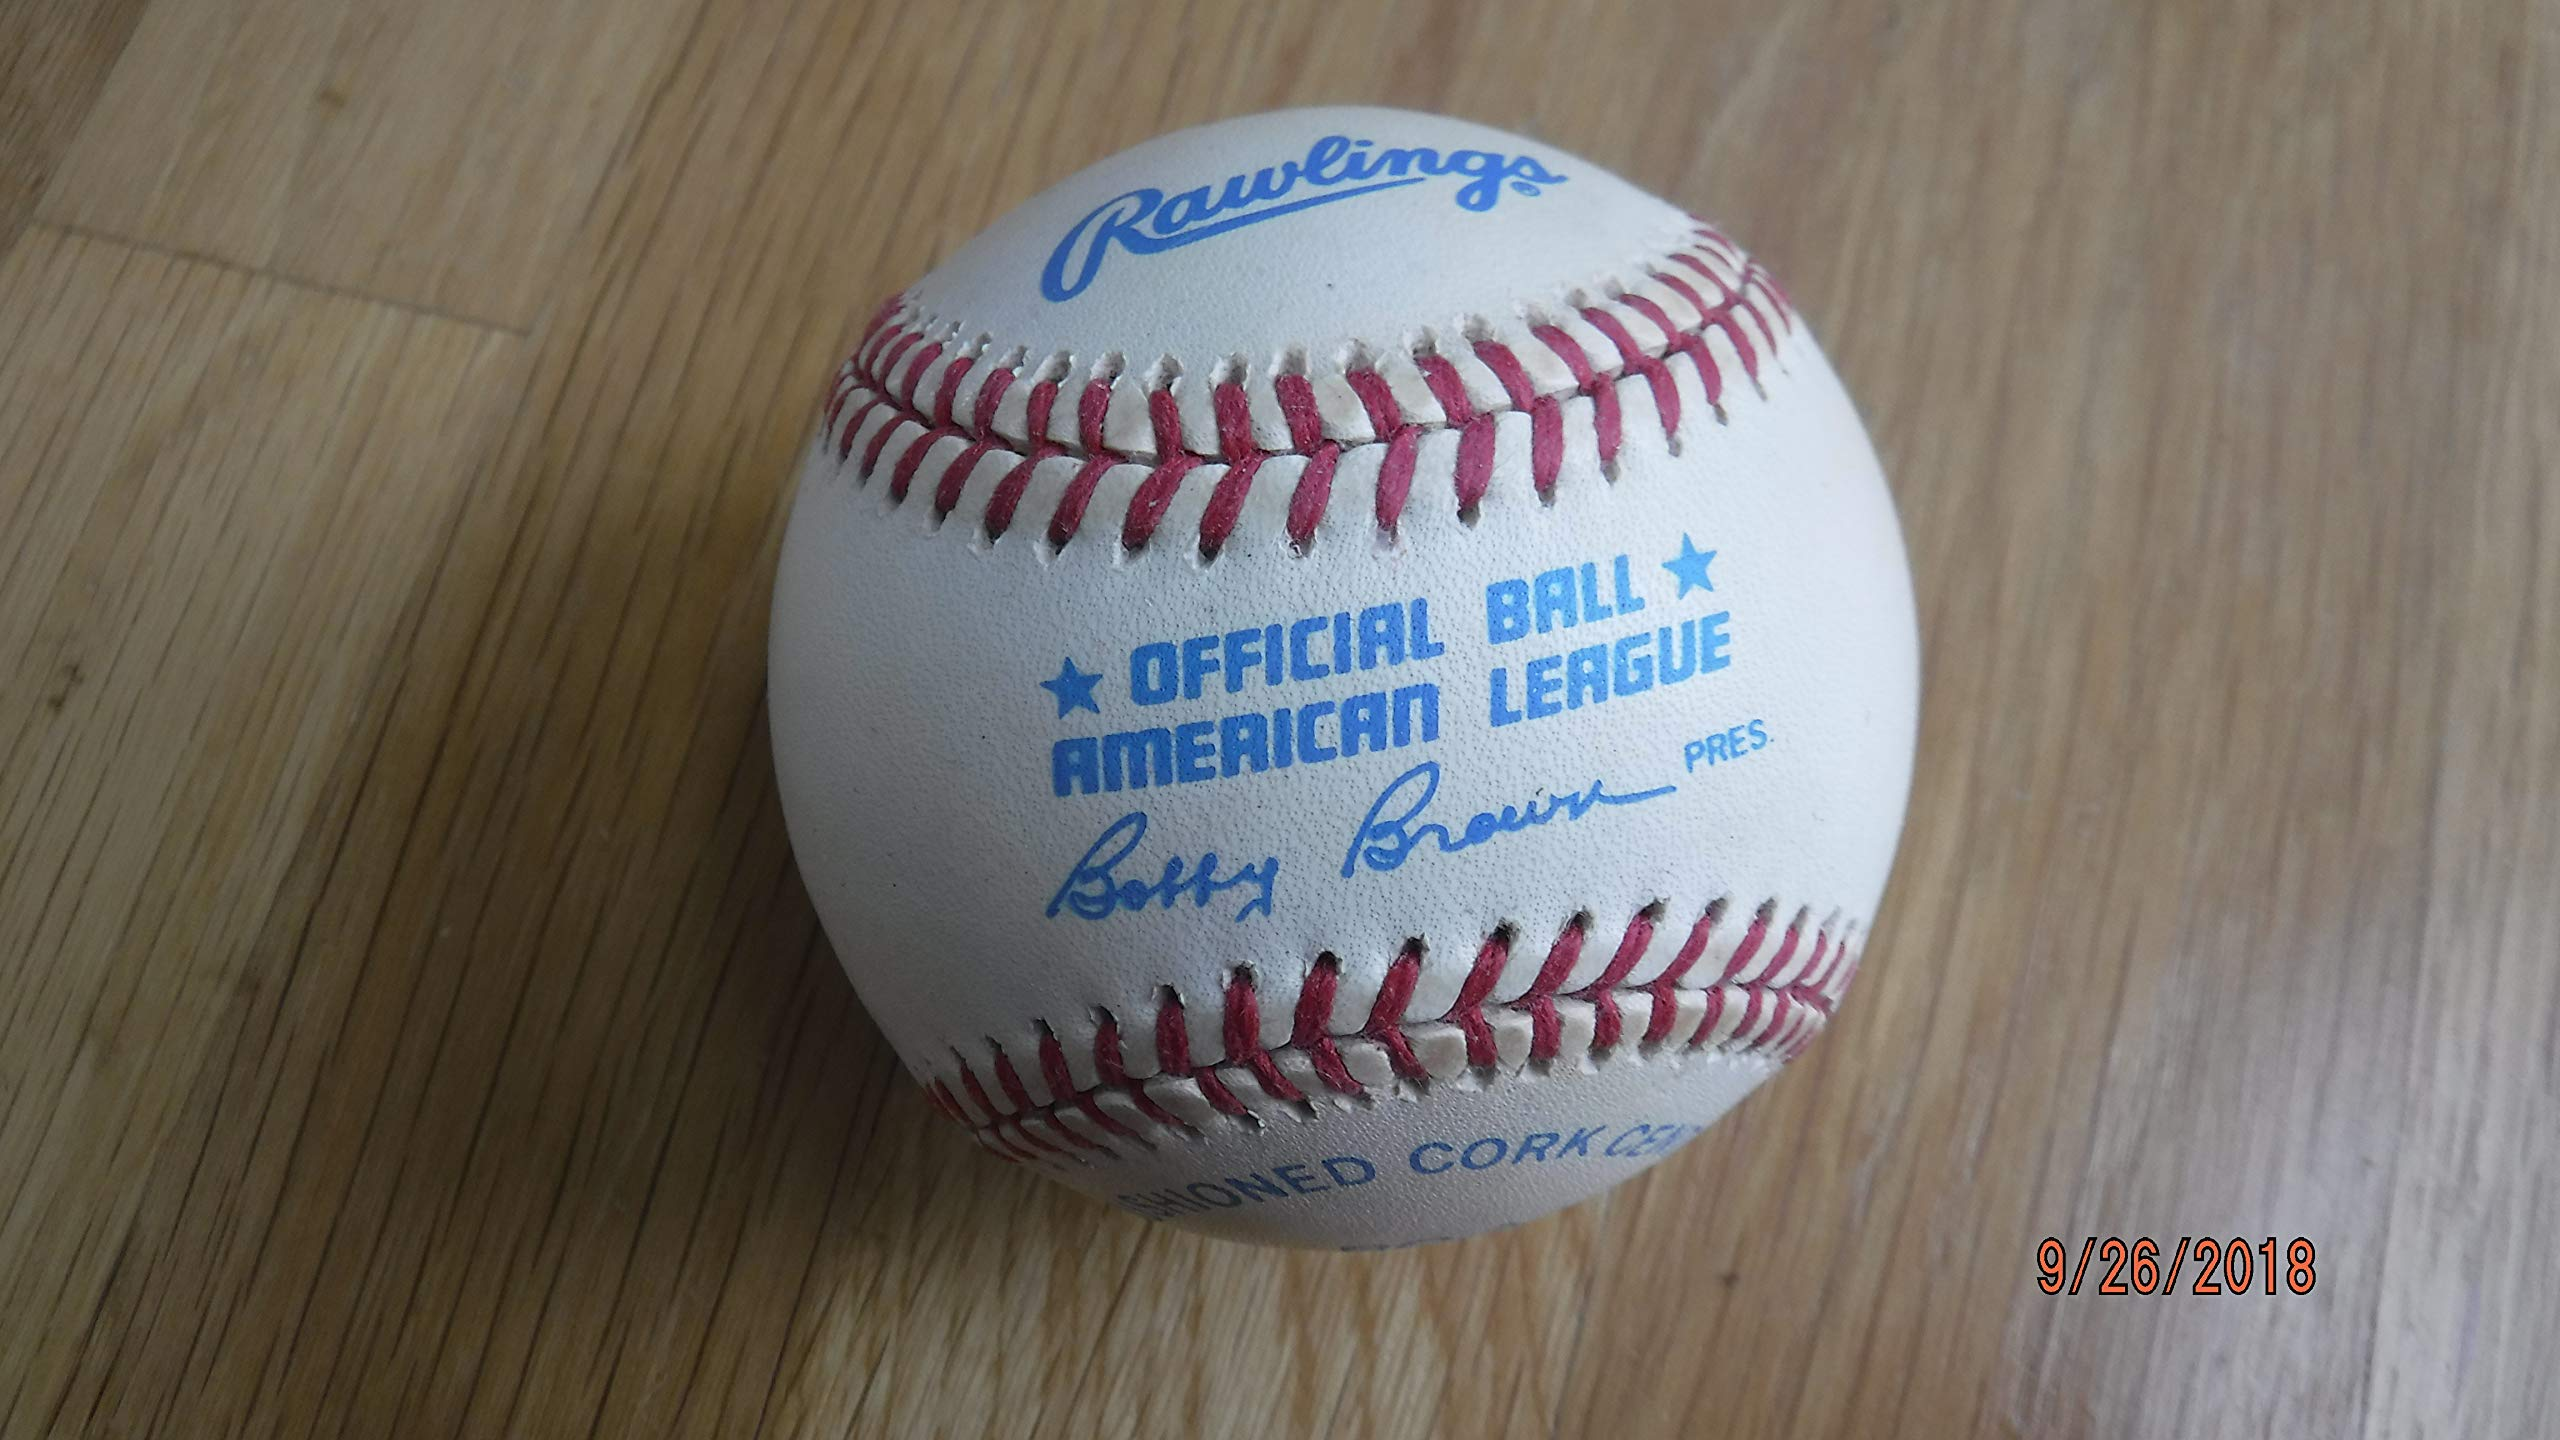 BOBBY BROWN Official 1980's American League Baseball